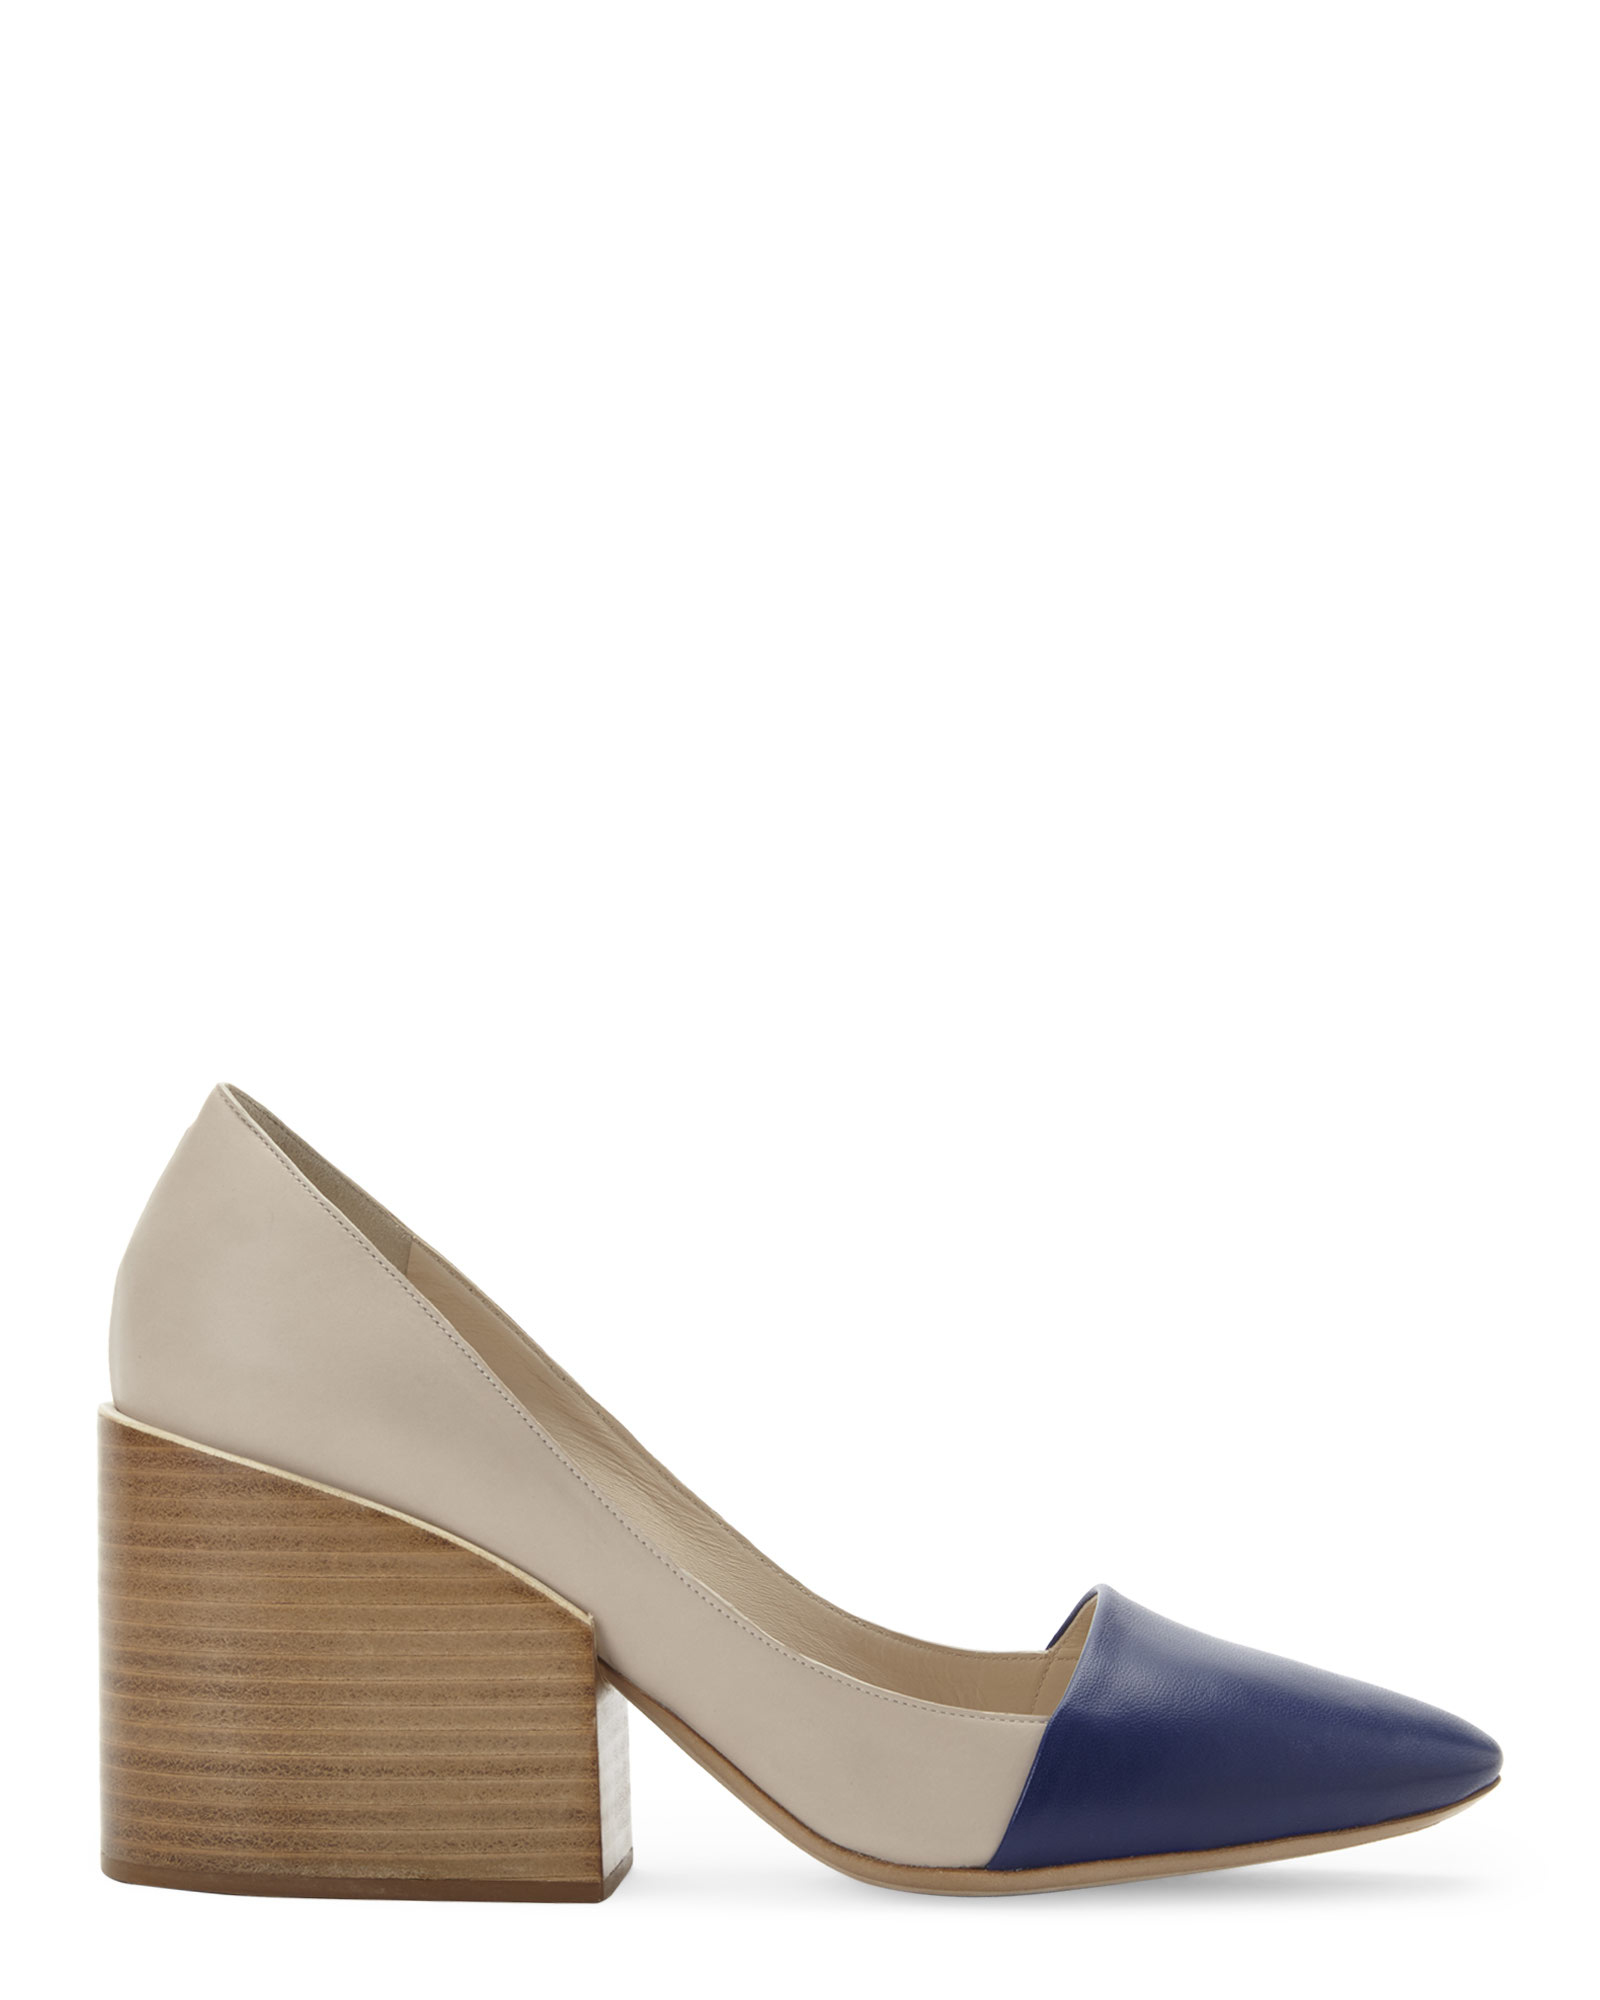 45b05e2ad016 Lyst - Chloé Chlo㉠Beige   Navy Two-Toned Block Heel Pumps in Blue